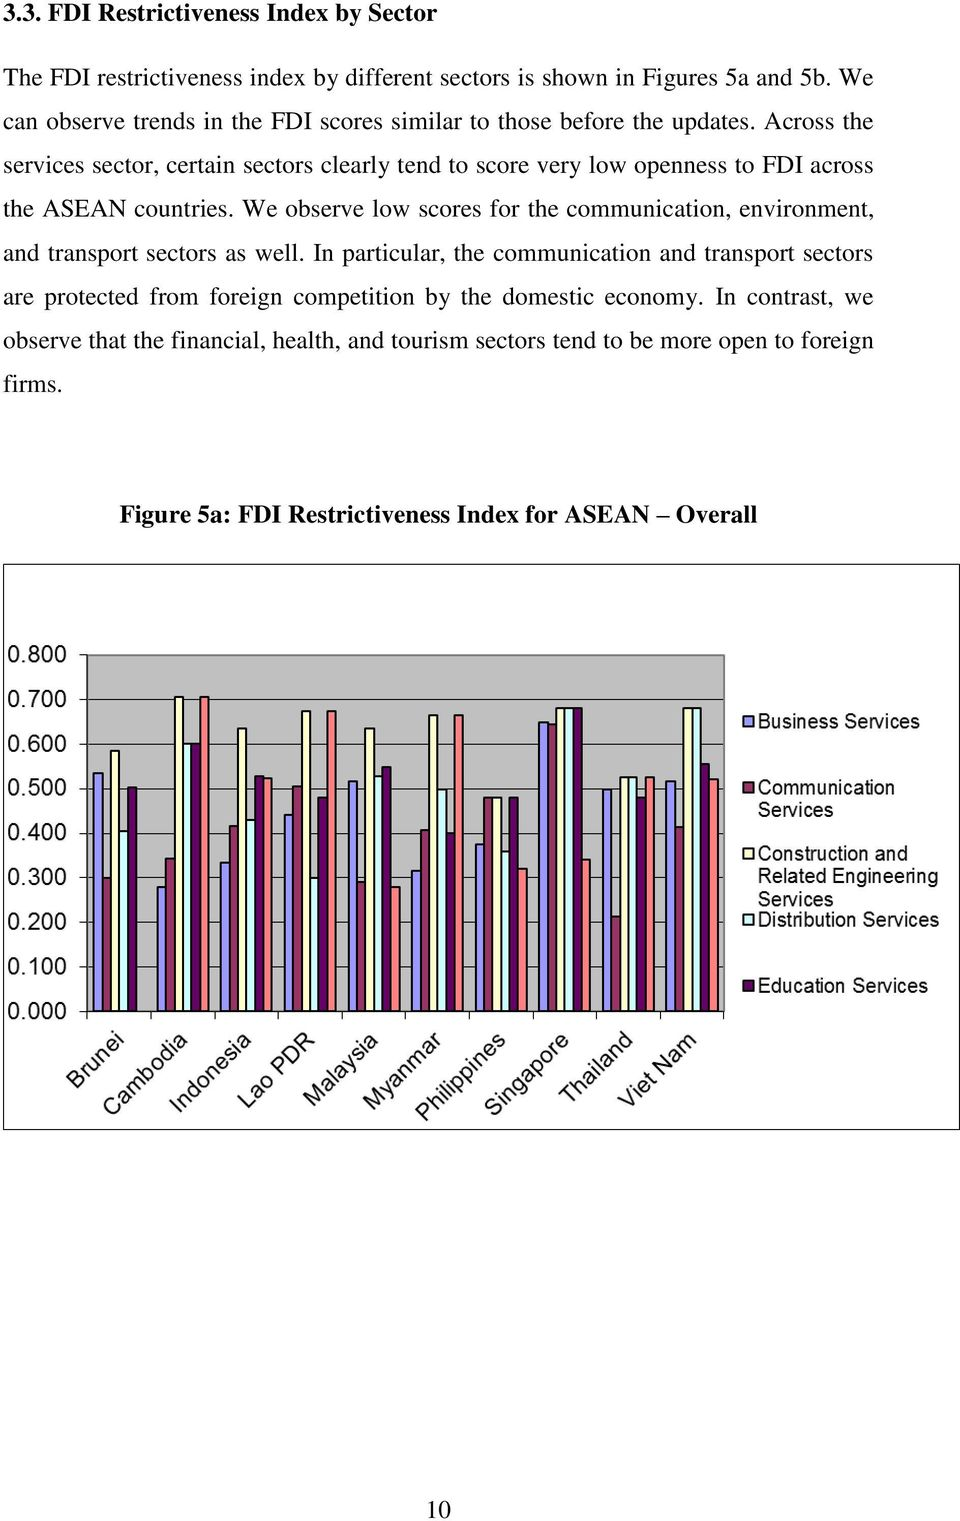 Across the services sector, certain sectors clearly tend to score very low openness to FDI across the ASEAN countries.